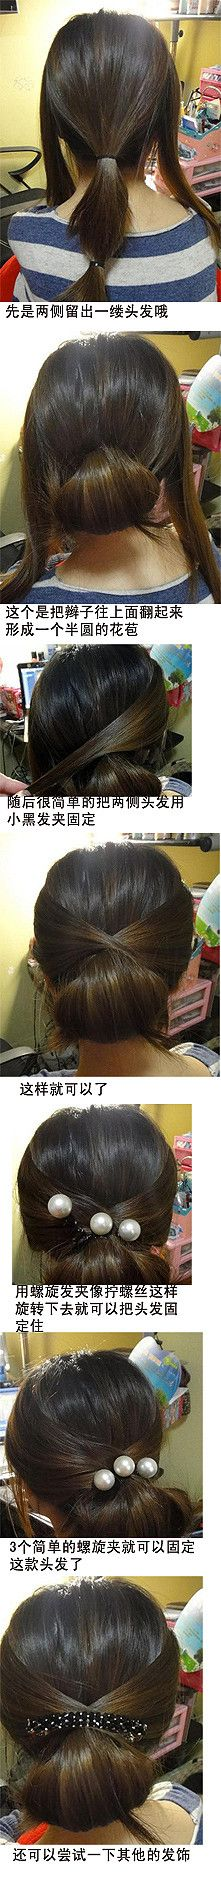 Simple updo you can understand even if its not in English! (: